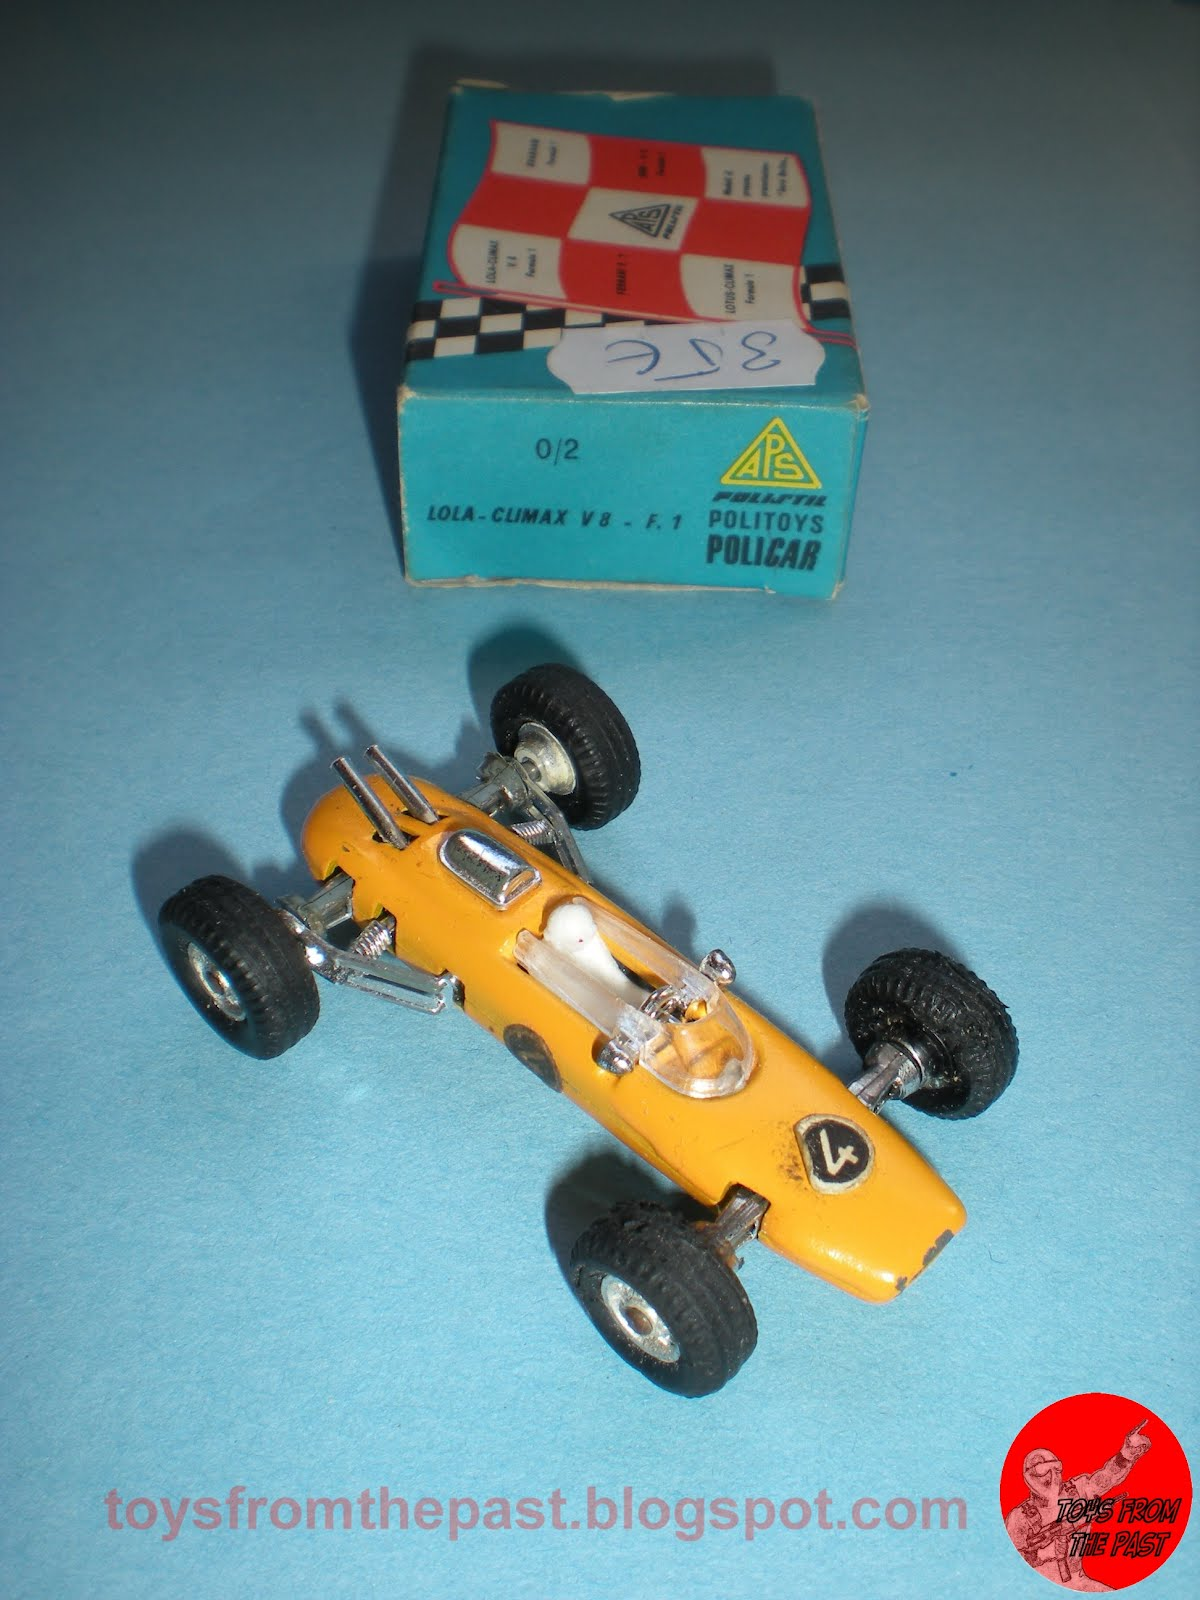 Penny 0/2 Lola Climax V8 – F.1(cc-by-nc-nd 3.0 toysfromthepast)